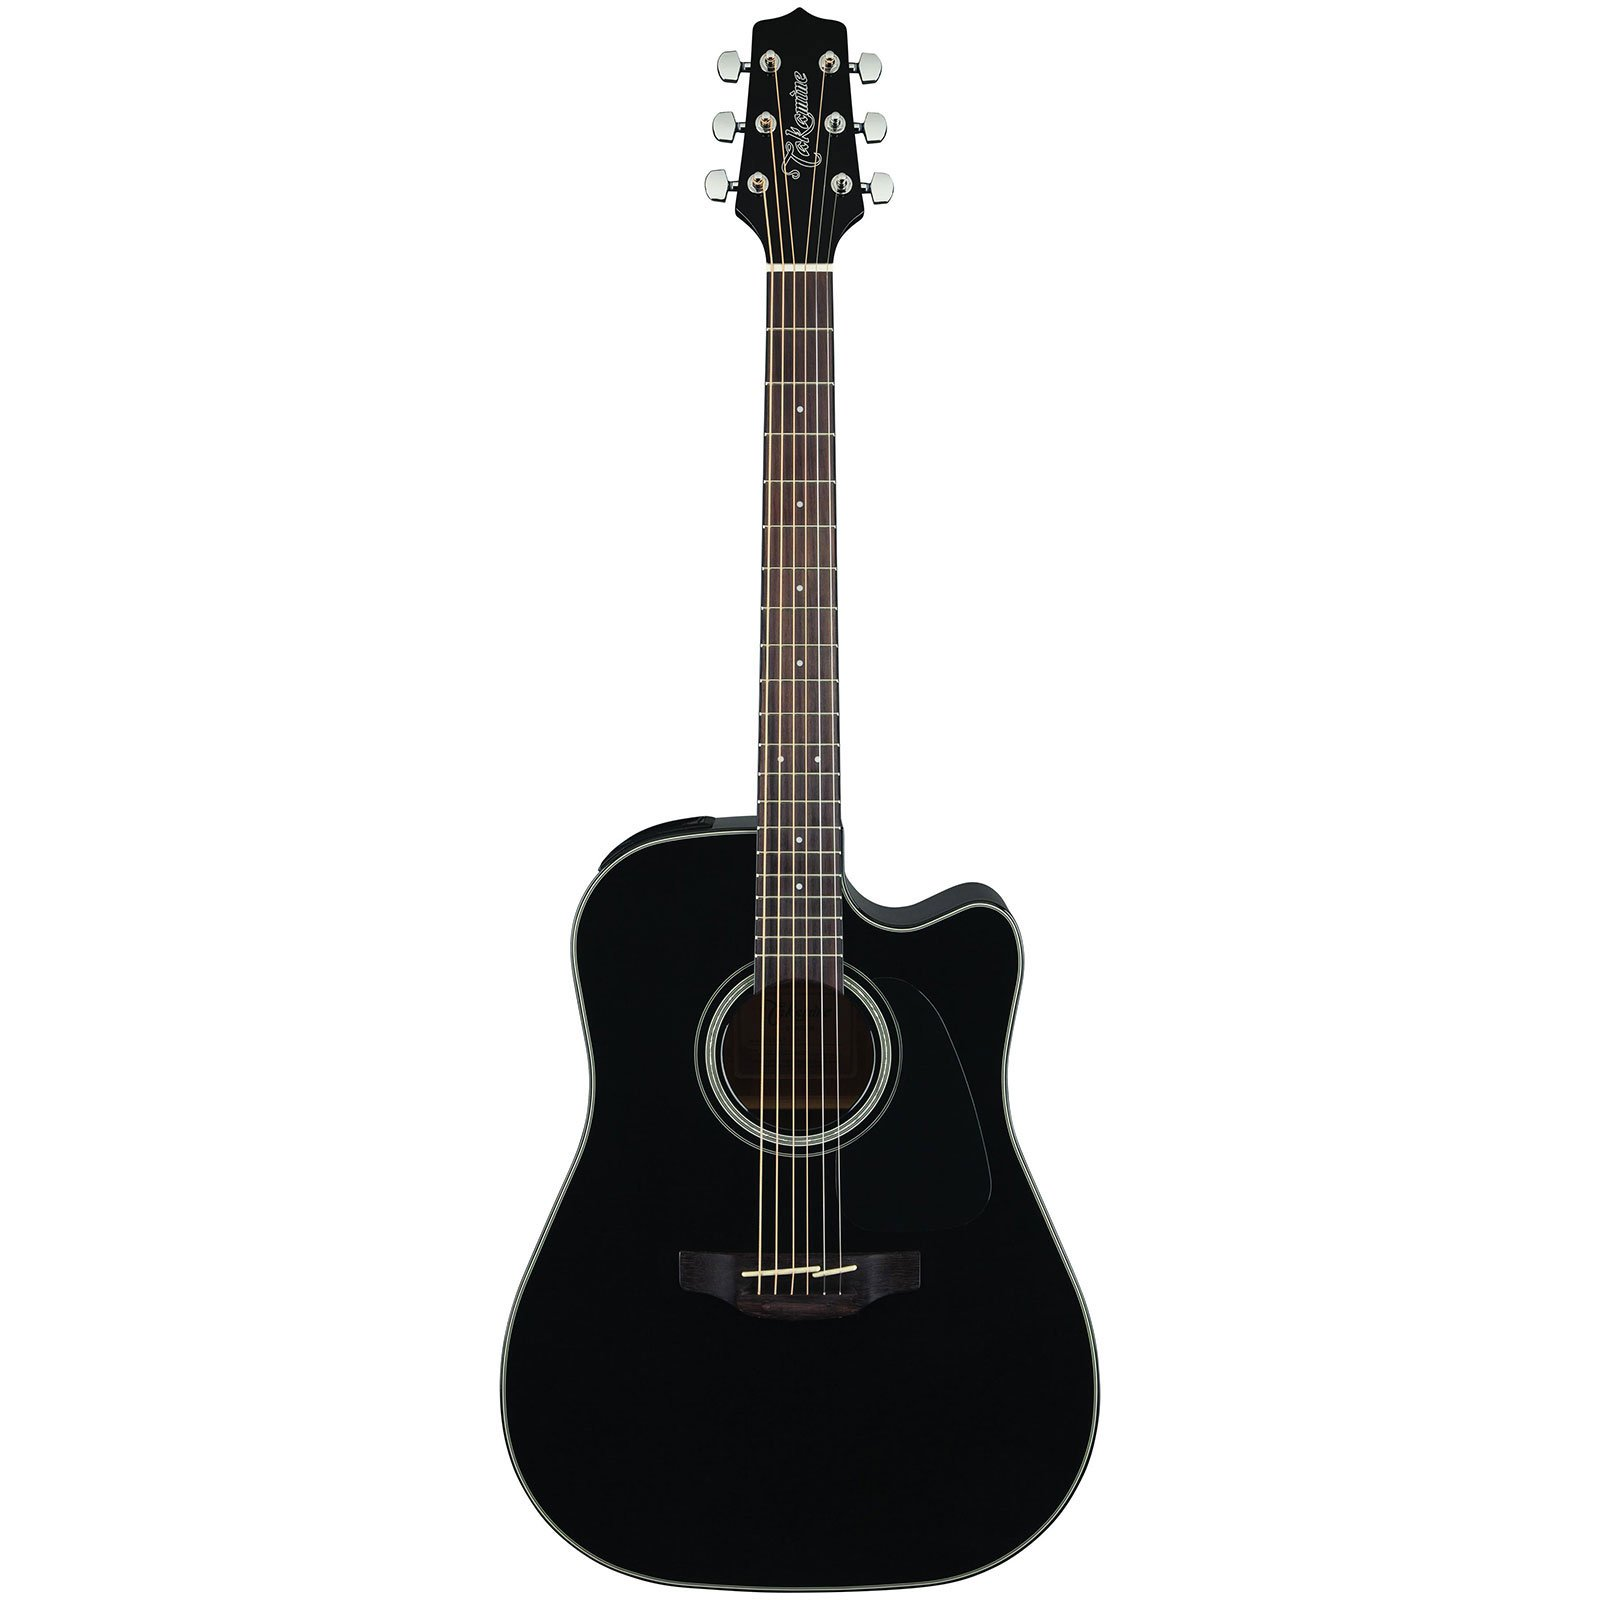 Takamine 6 String Acoustic-Electric Guitar GD30CE BLK-KIT-1 by Takamine